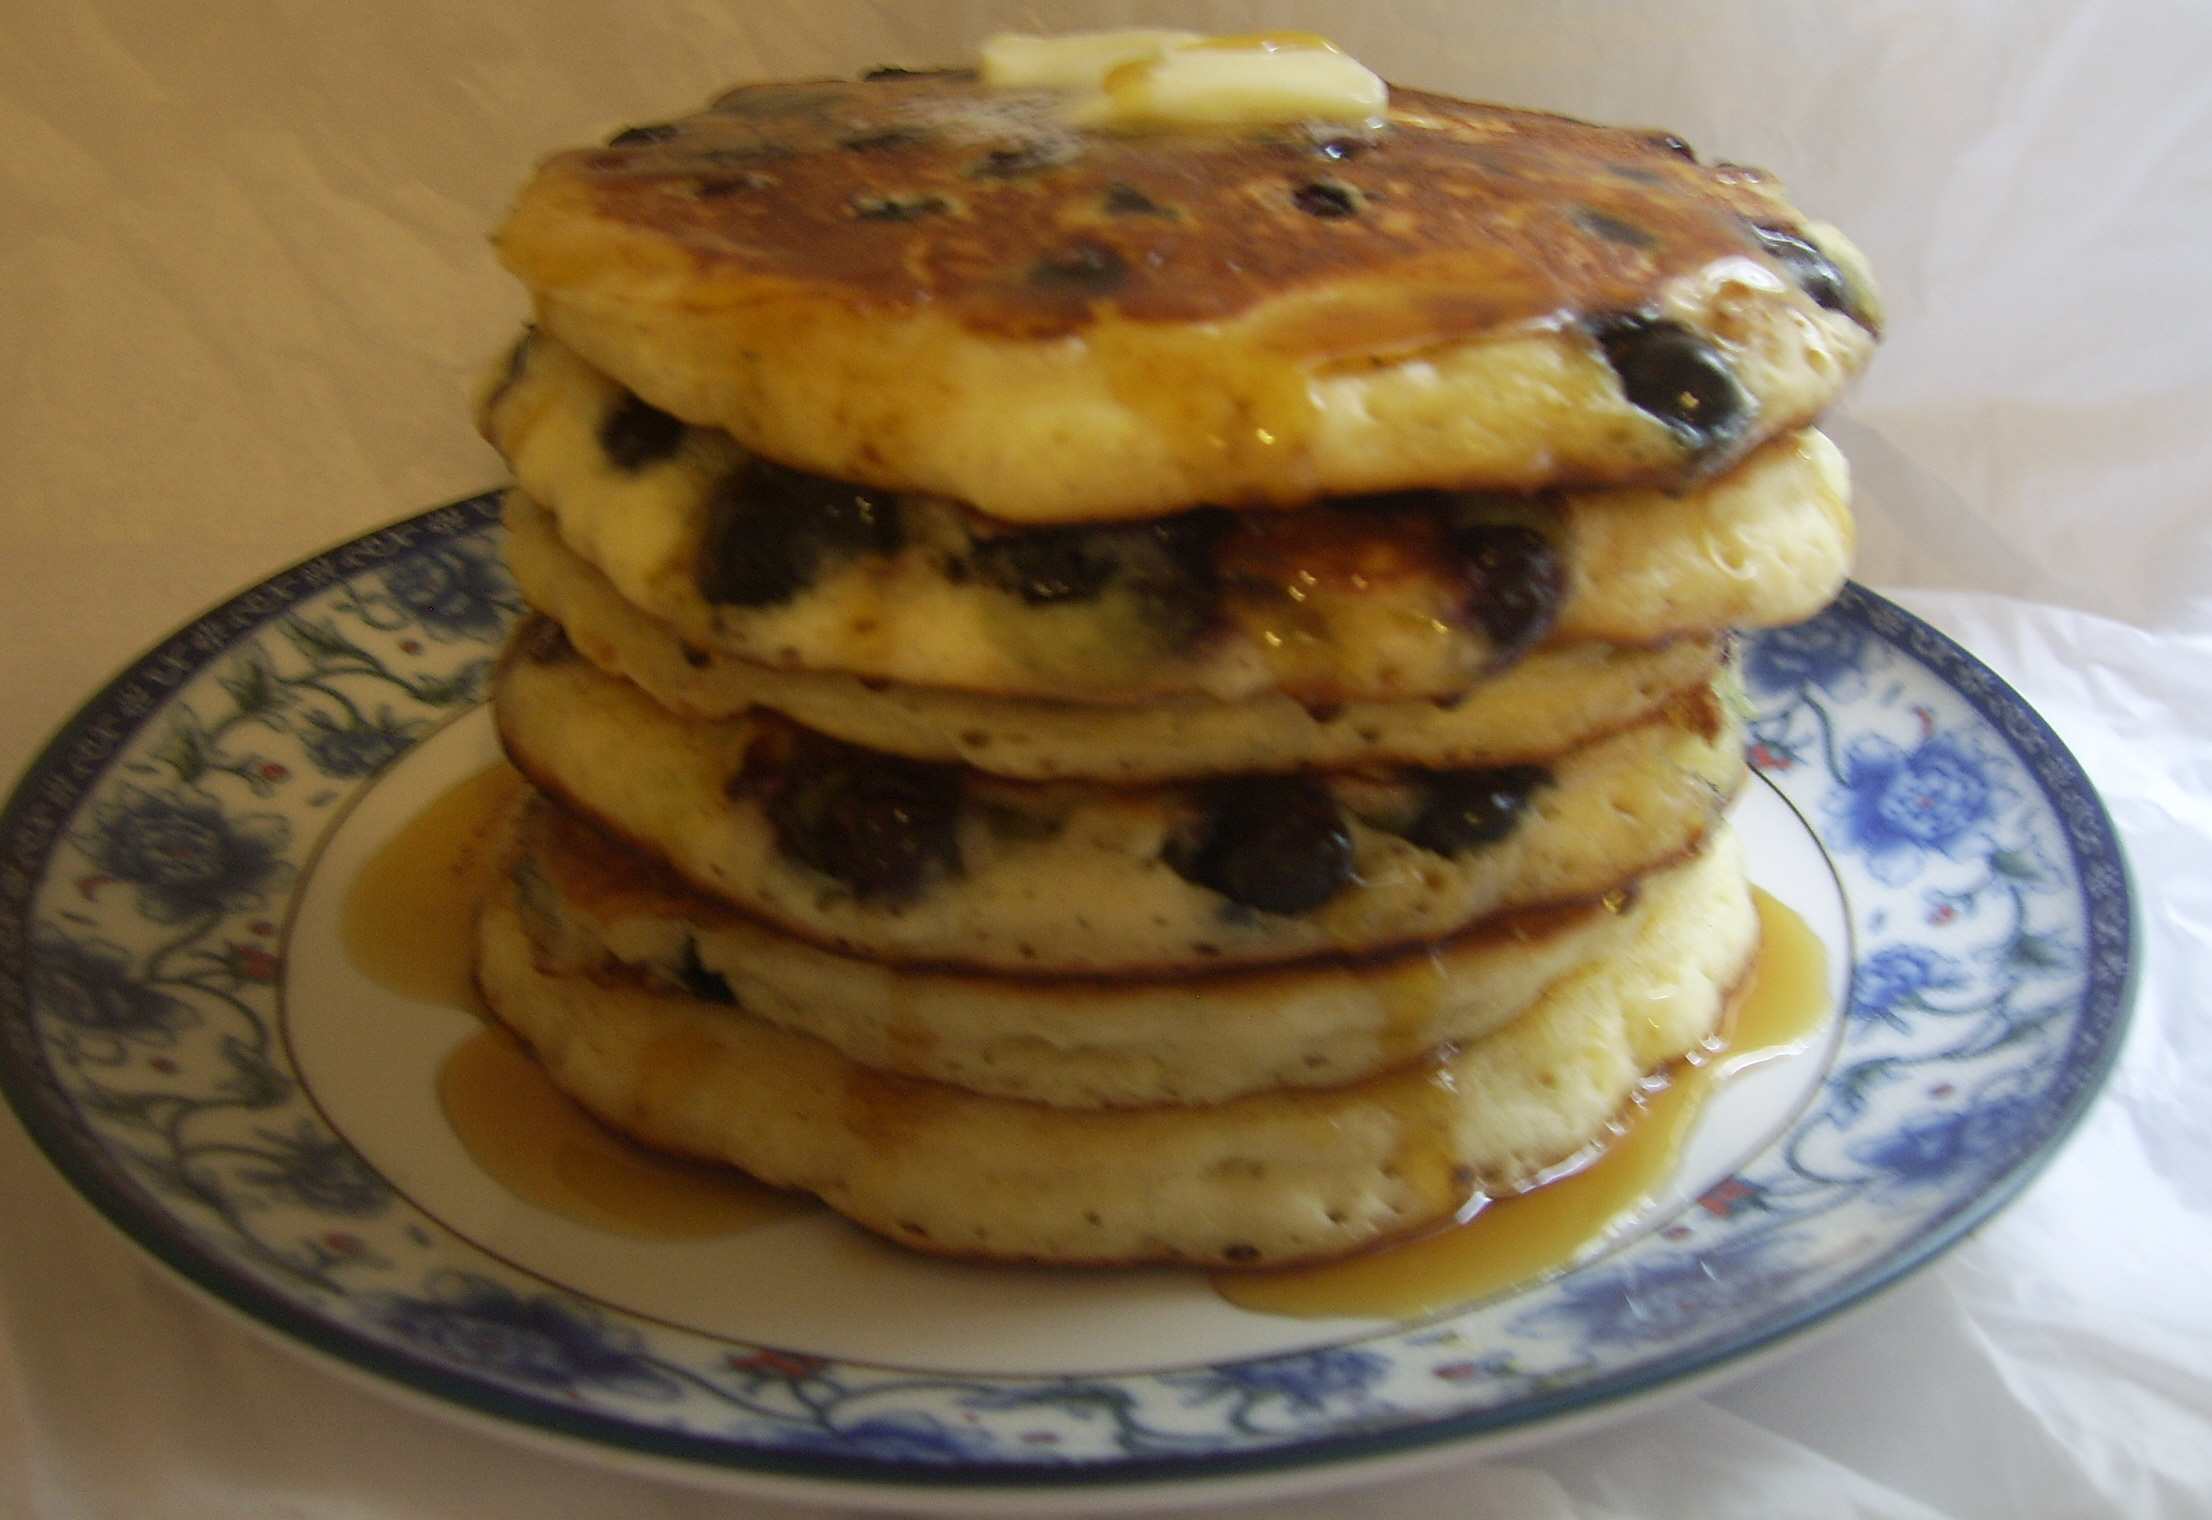 ... blueberries 7 breakfast 29 tags lemon blueberry pancakes 3 comments